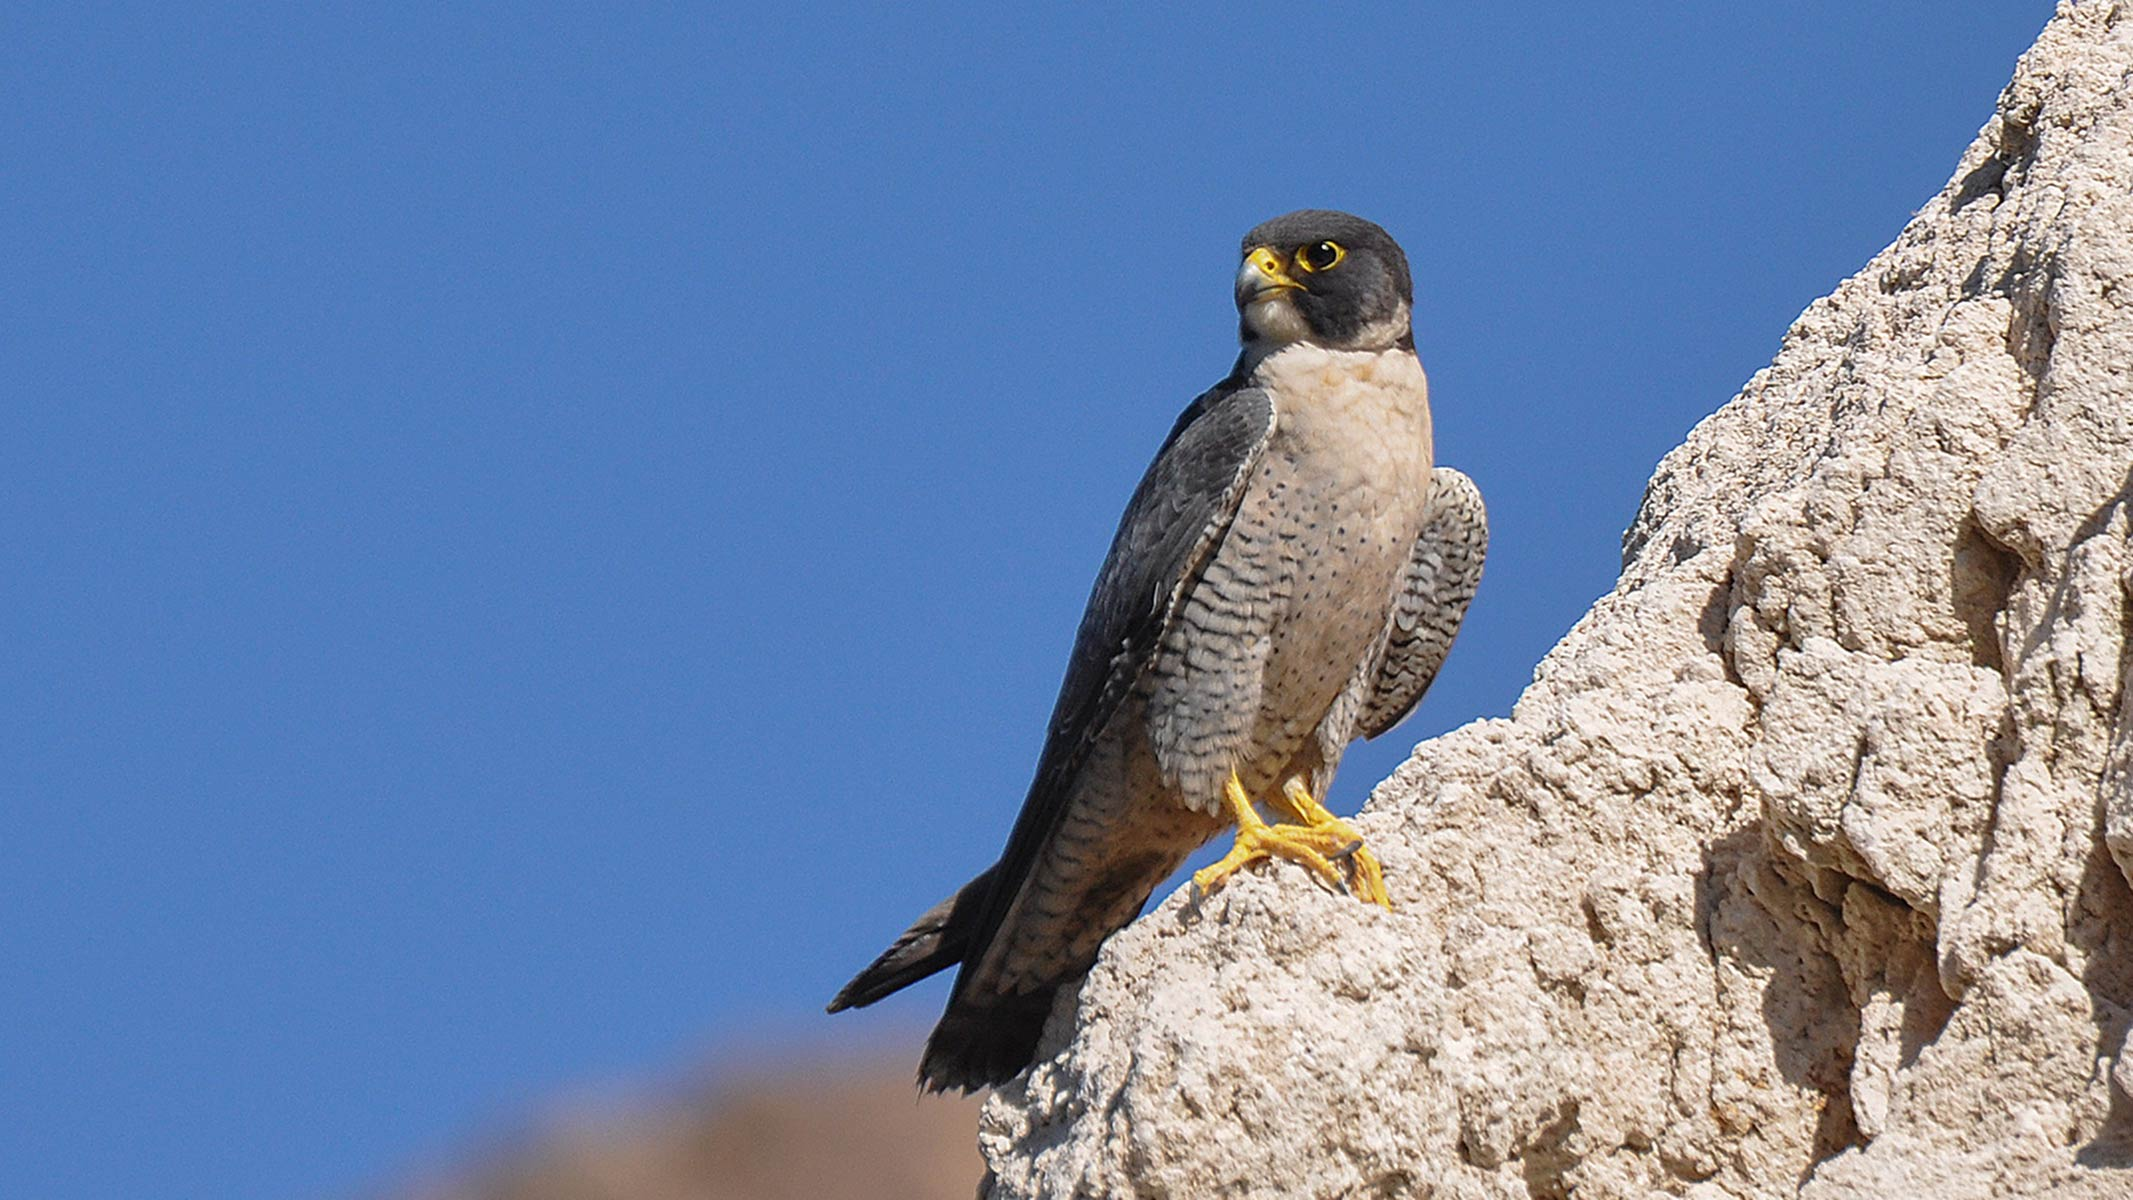 Peregrine falcon perched on rocks, blue sky behind